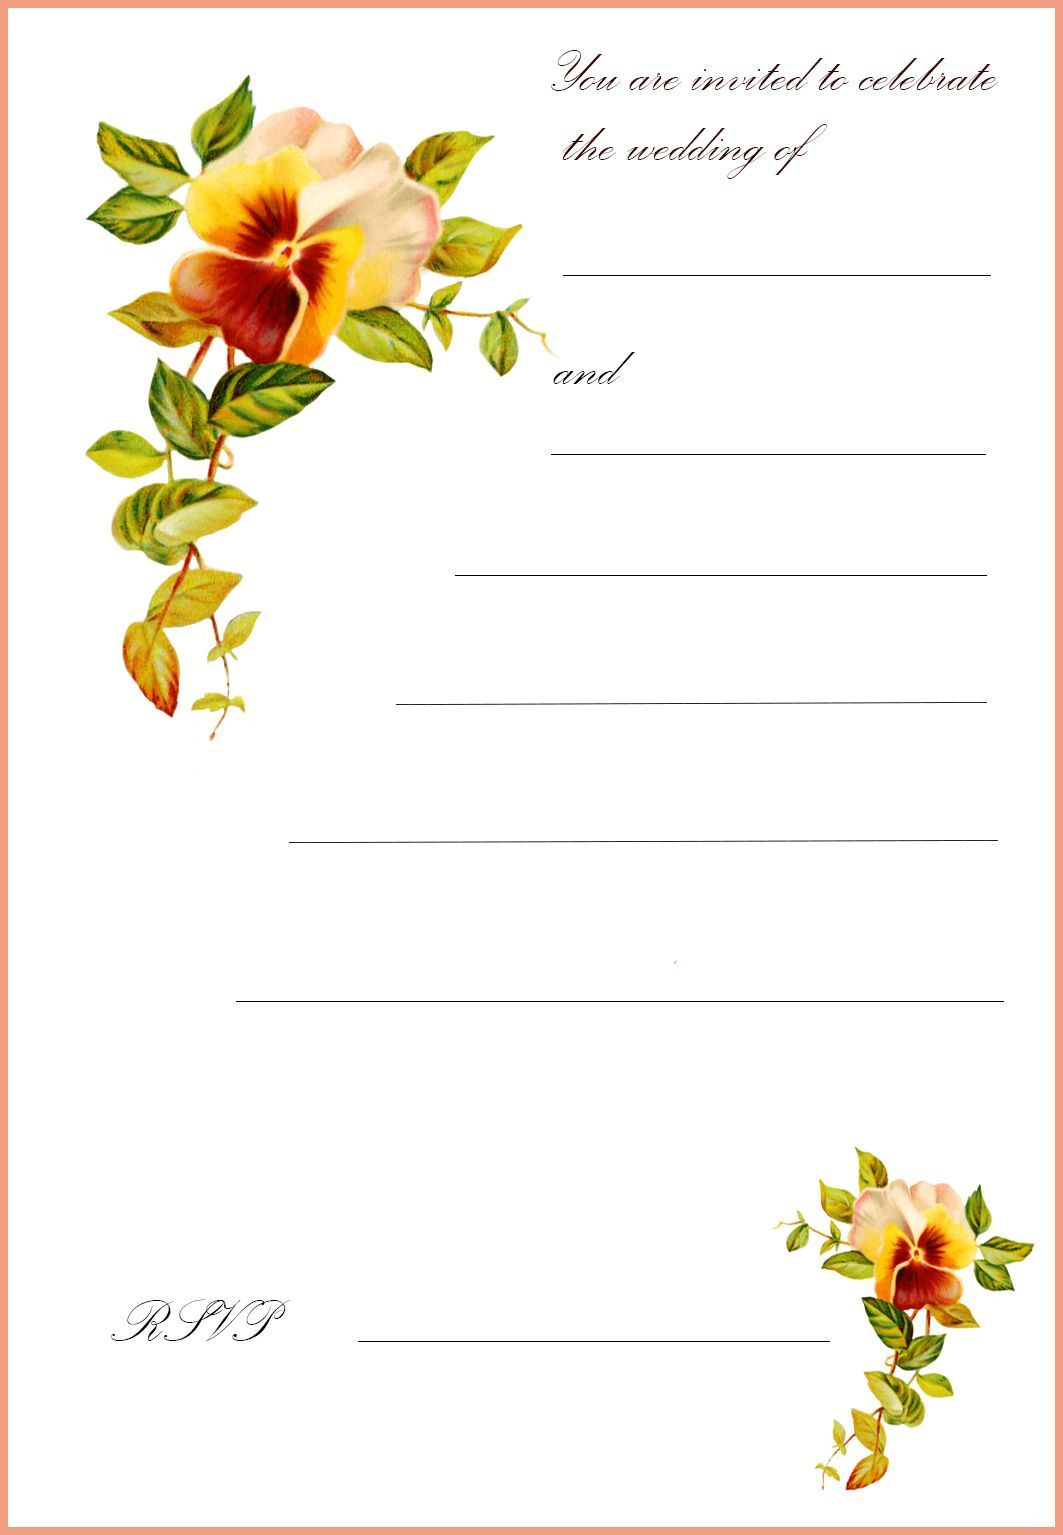 picture relating to Free Printable Wedding Cards referred to as 27+ Very Picture of Absolutely free Printable Wedding ceremony Invites